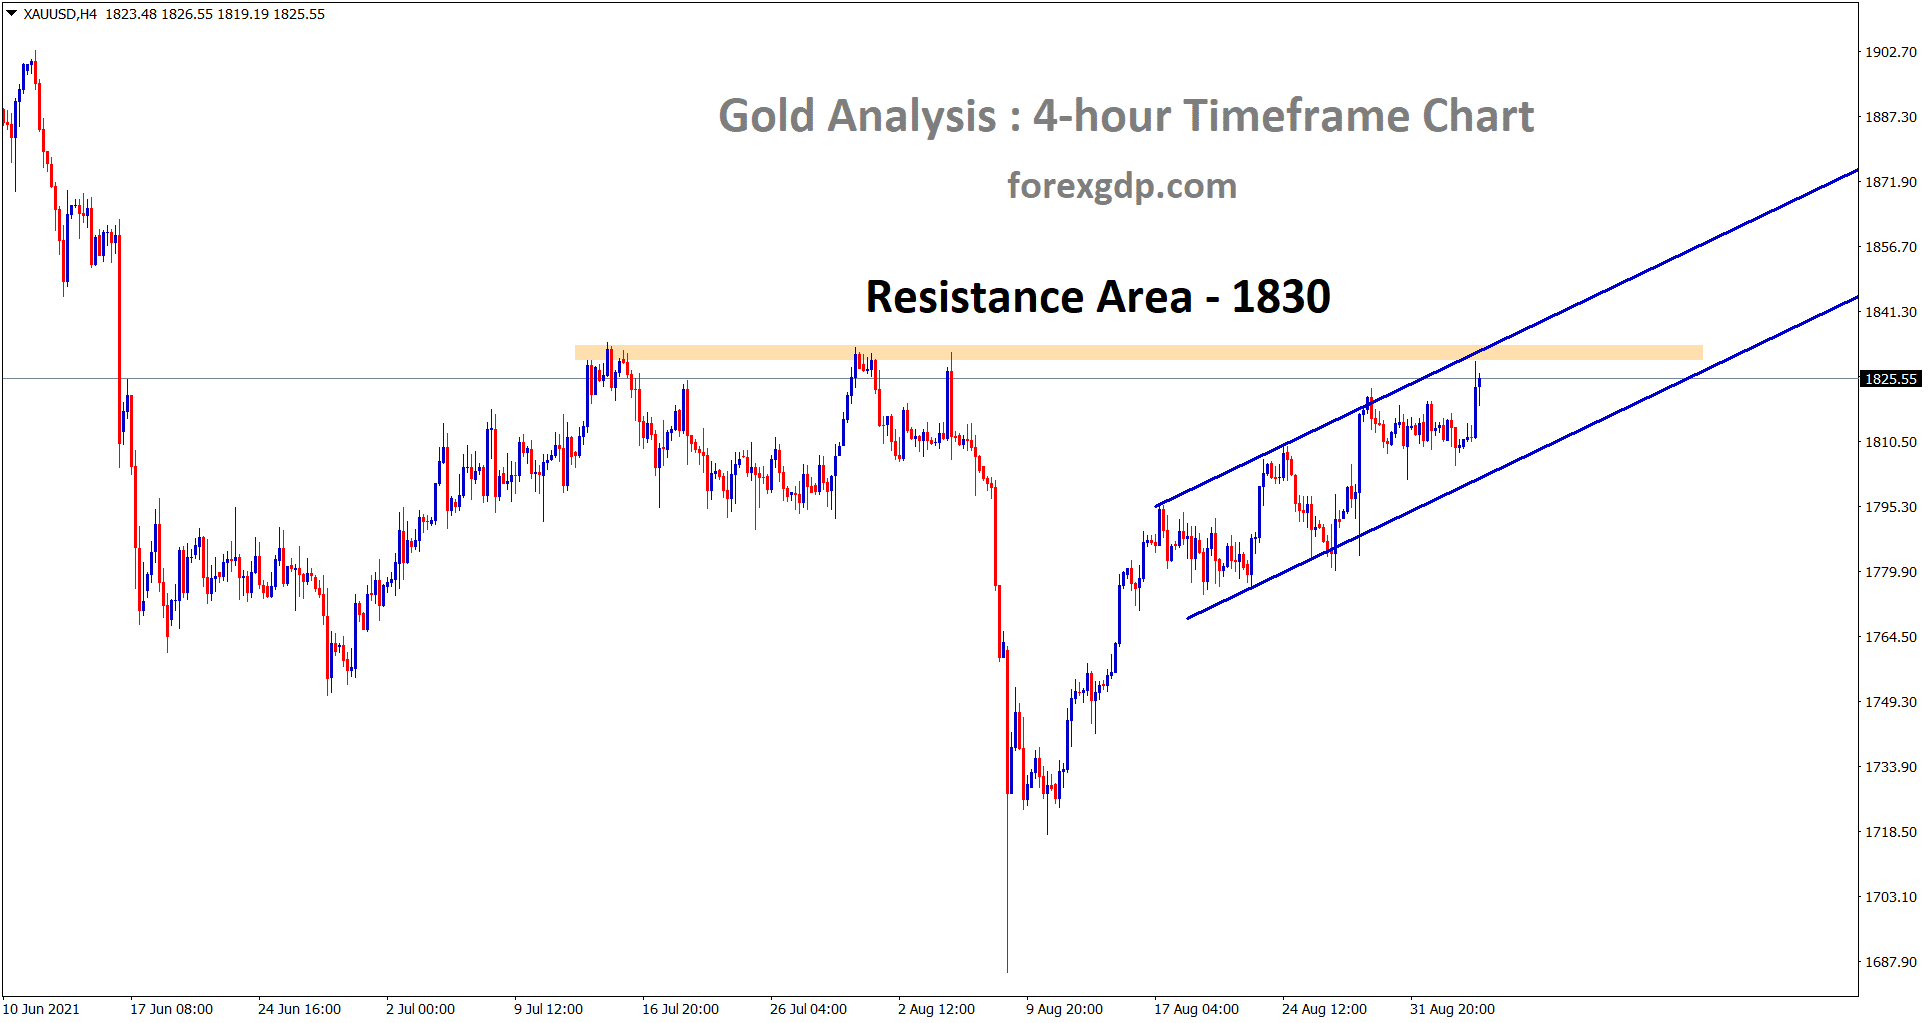 Gold has reached the horizontal resistance area while moving in an Ascending channel